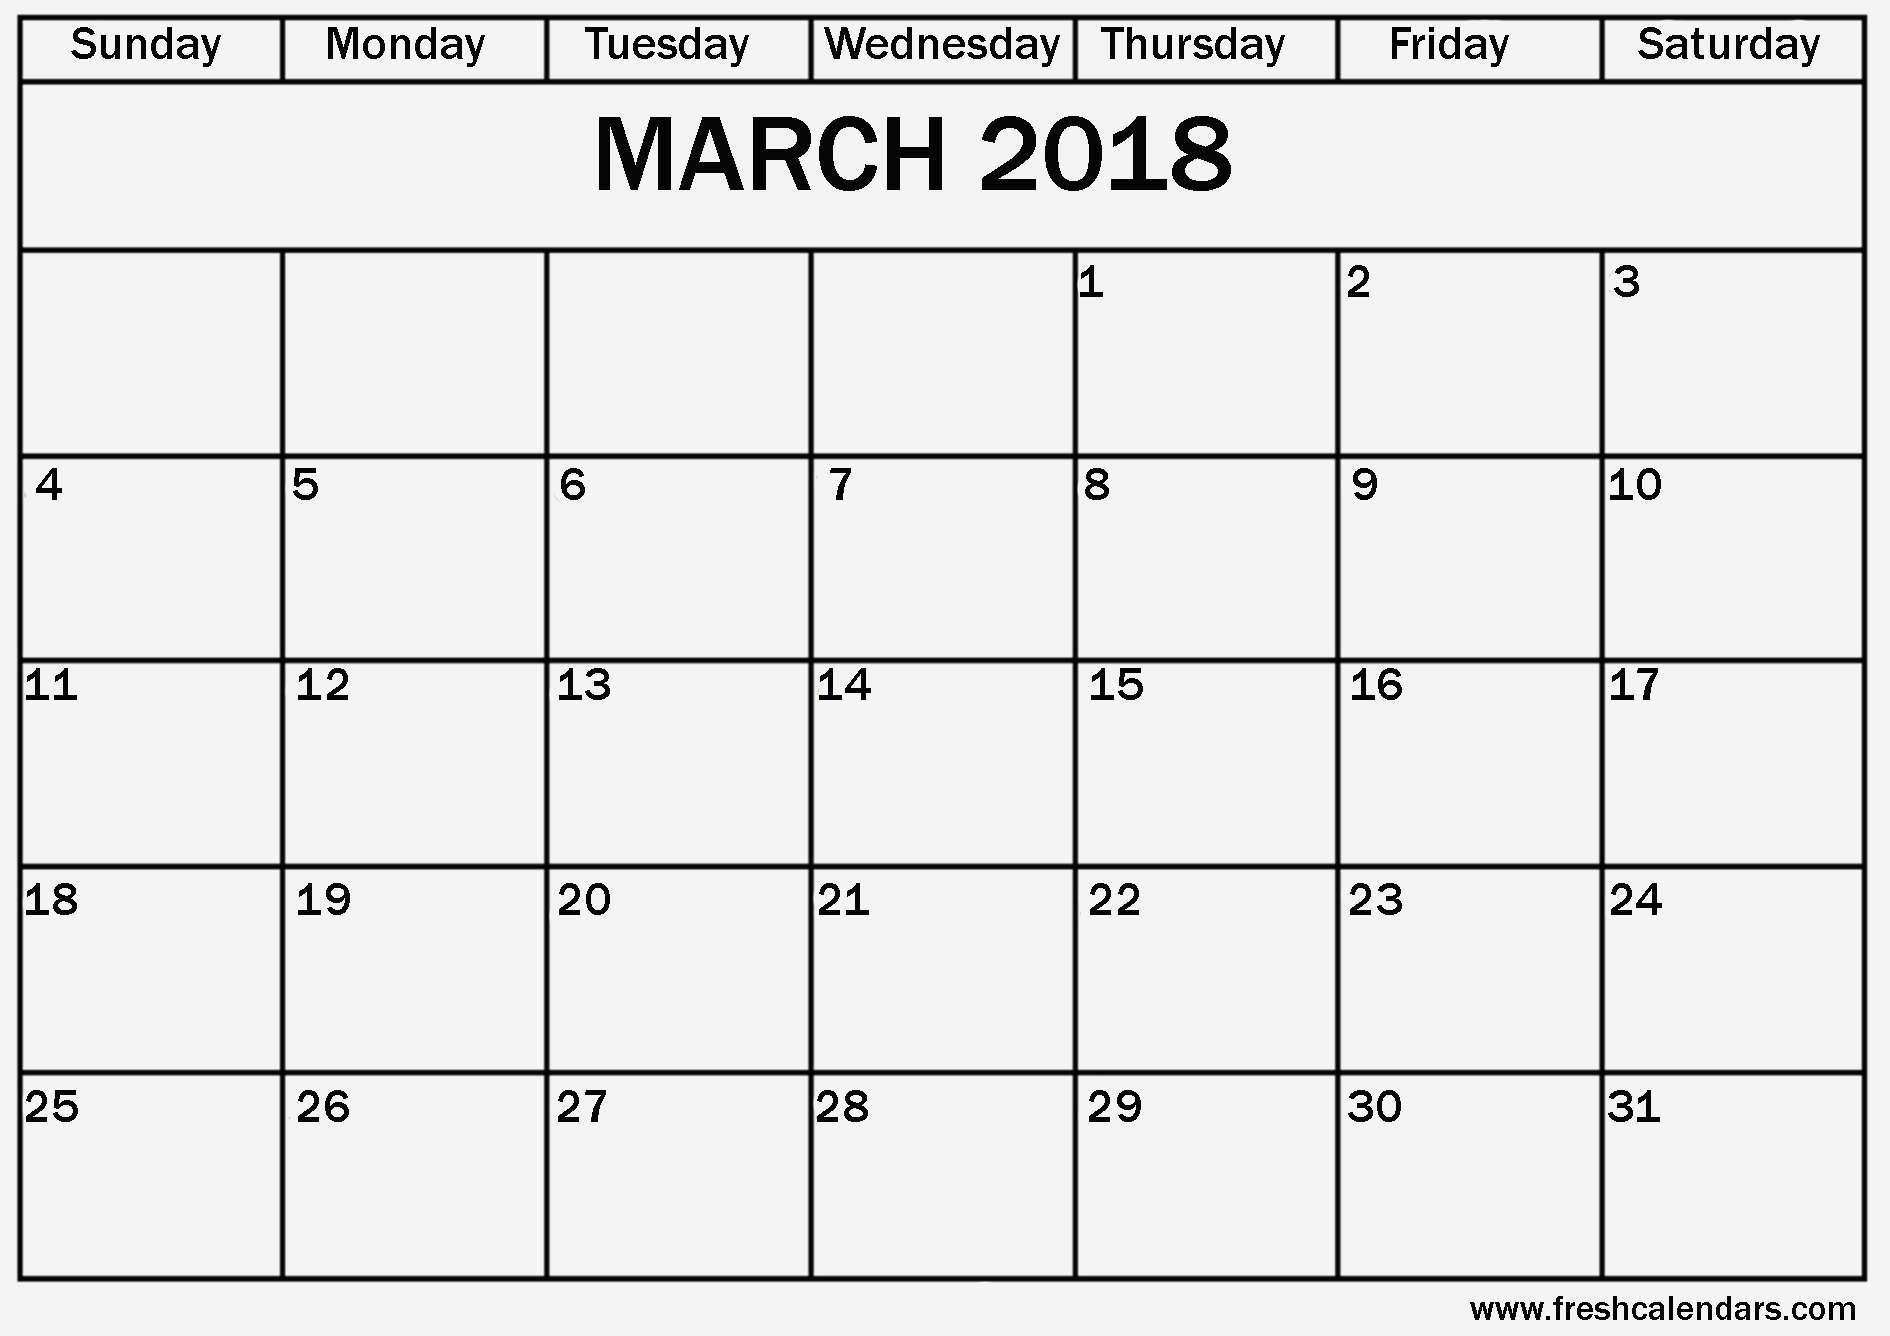 March 2019 Calendar Uk Printable Más Caliente Tips Intended for Free Printable Word Calendar 2019 Calendar Of March 2019 Calendar Uk Printable Más Reciente 2018 Editorial Calendar Templates Sports Team Template Blog Sneak P